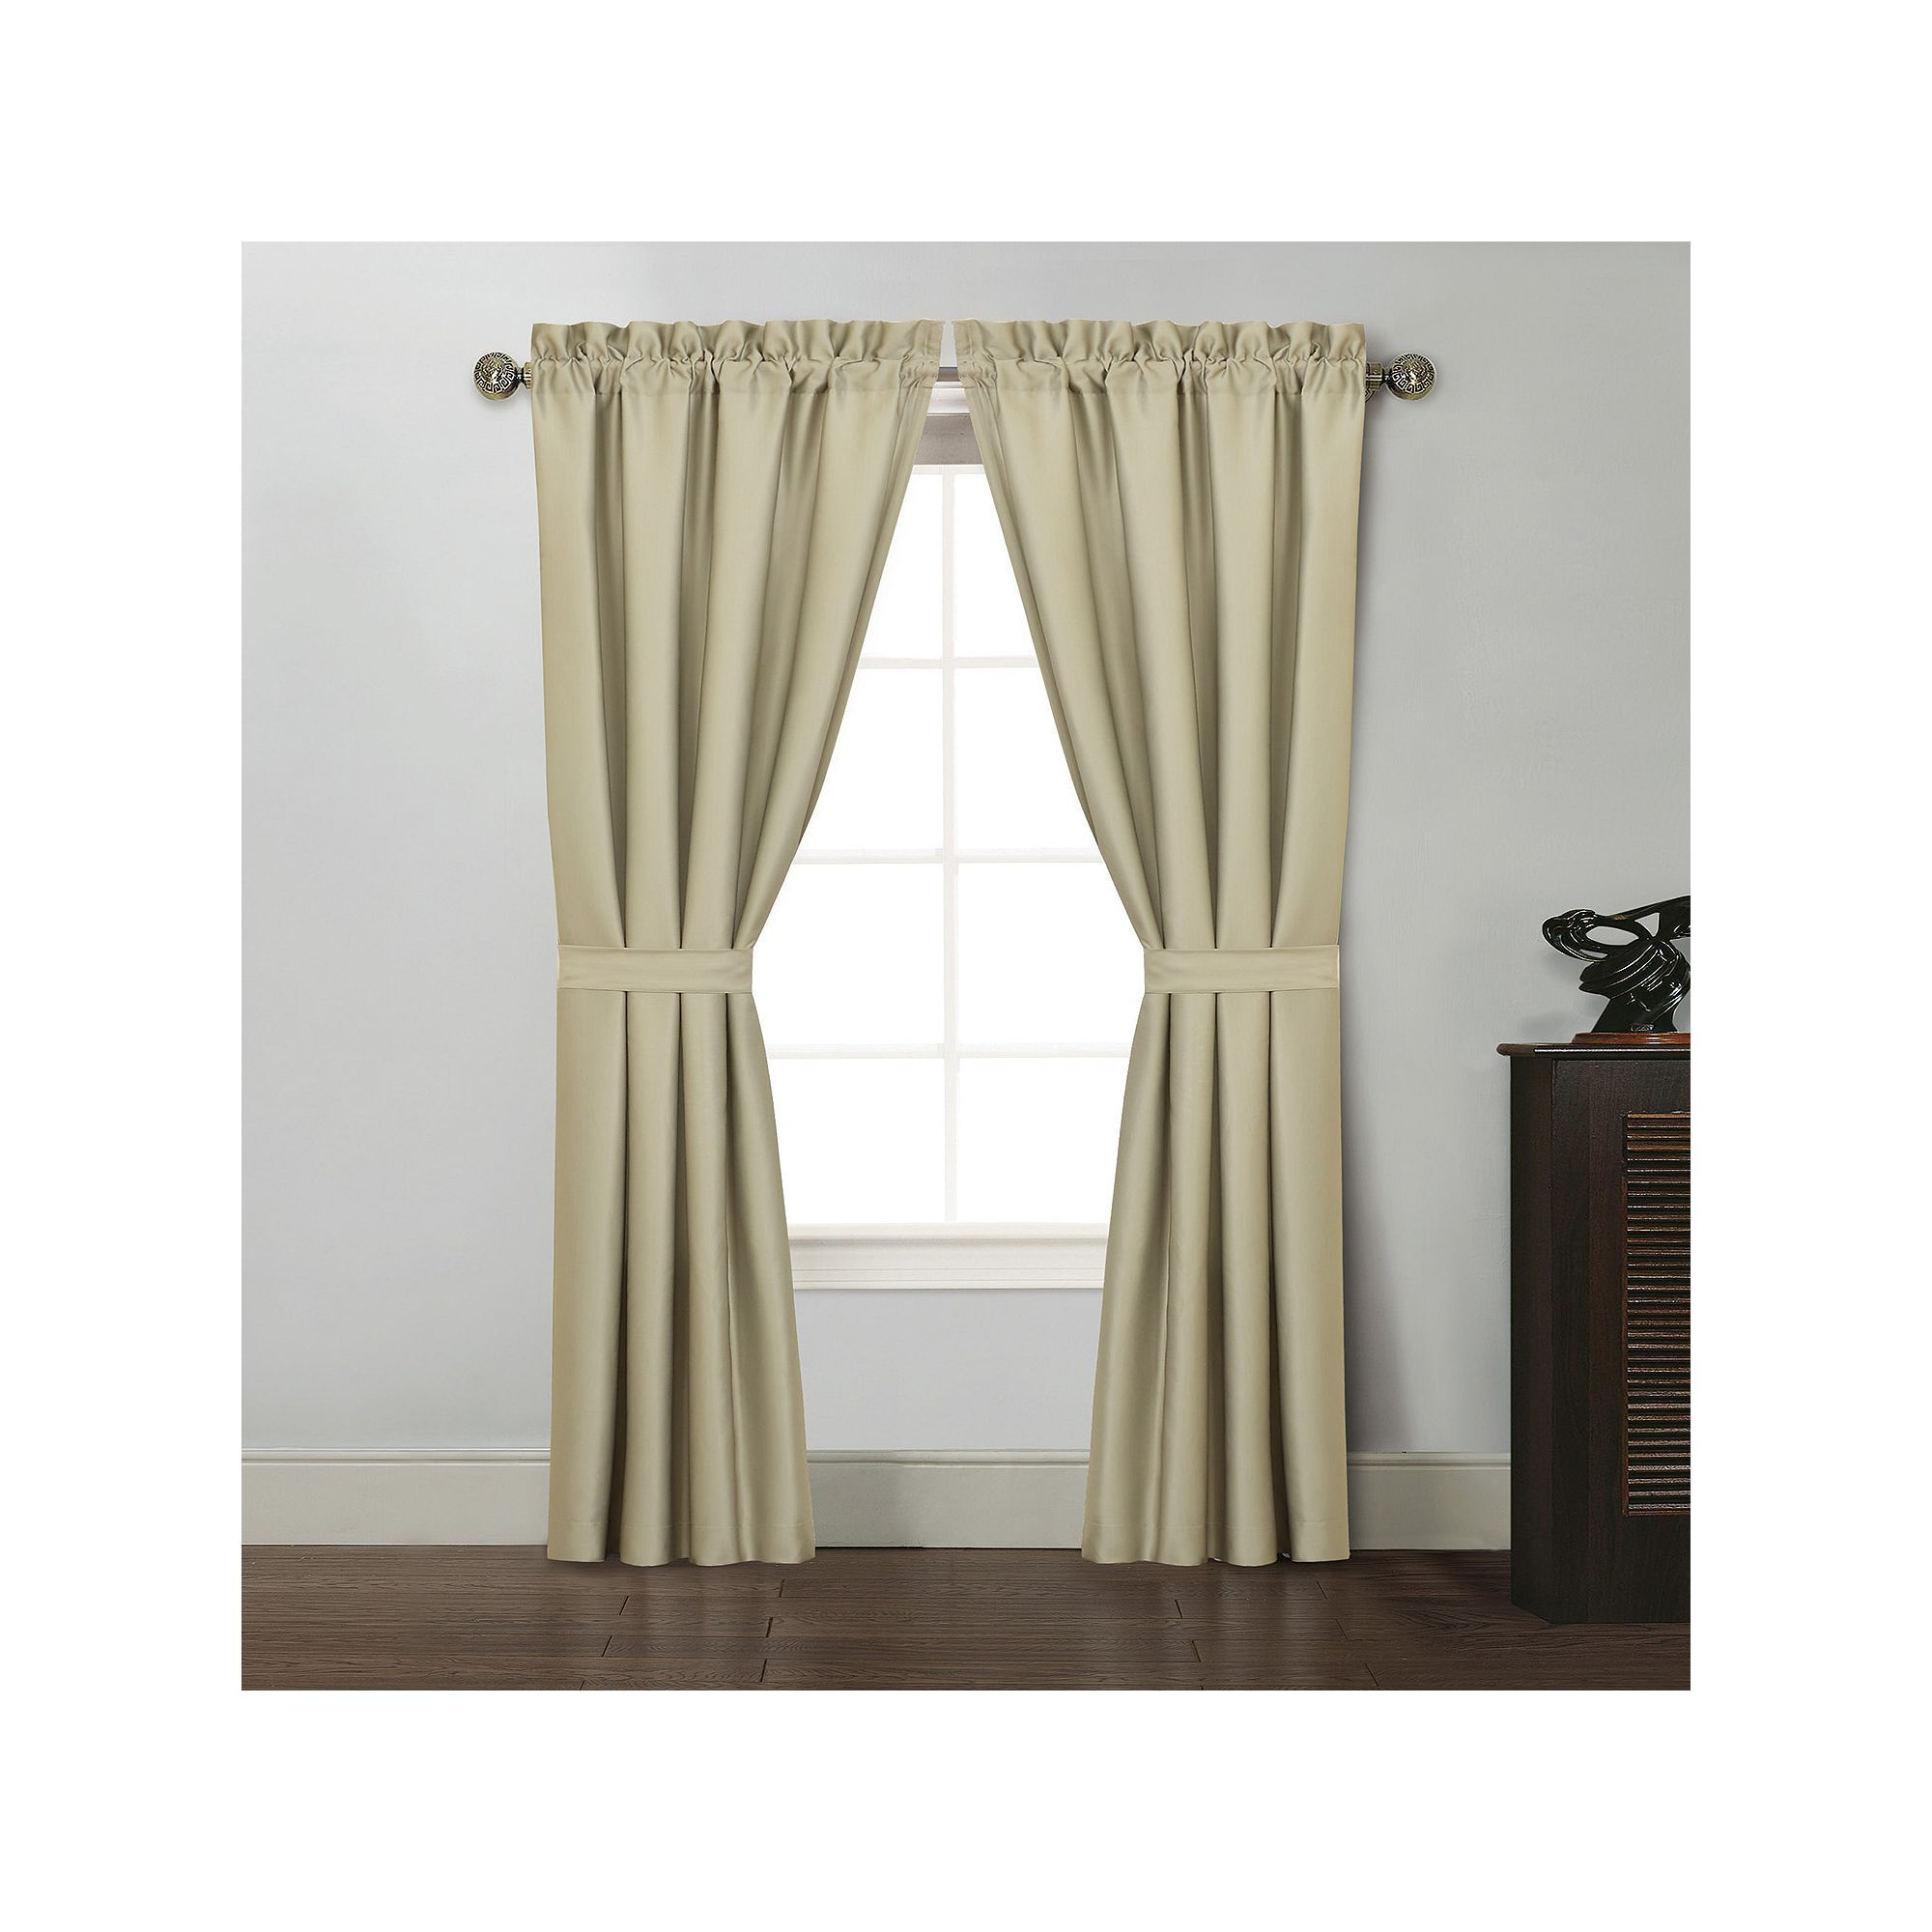 us free green l curtains oklahomavstcu online image bright permalink home emerald curtain decor drapes colorful shower mini